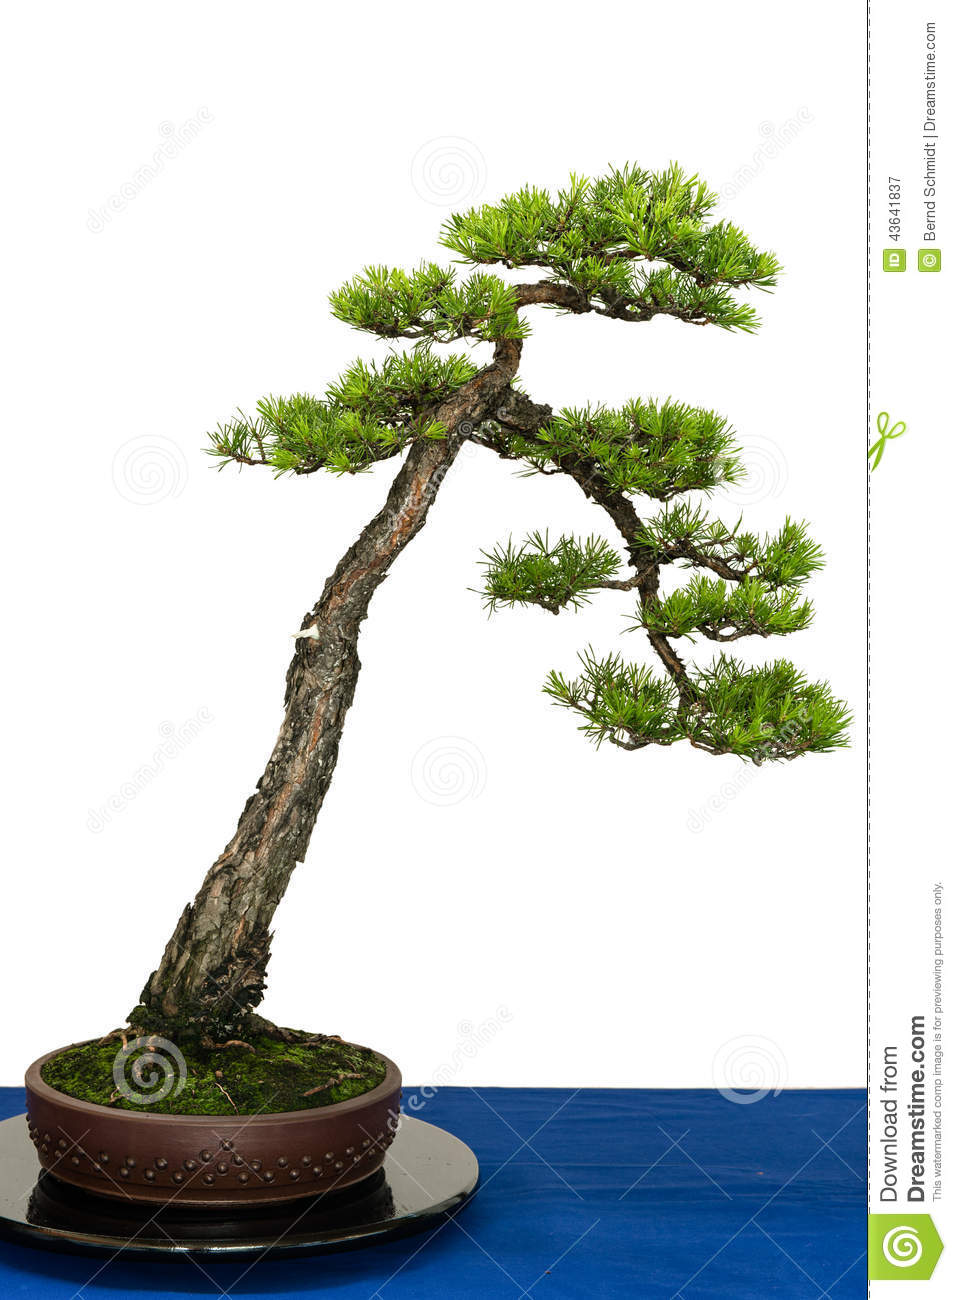 scots pine as bonsai tree stock image image of china. Black Bedroom Furniture Sets. Home Design Ideas